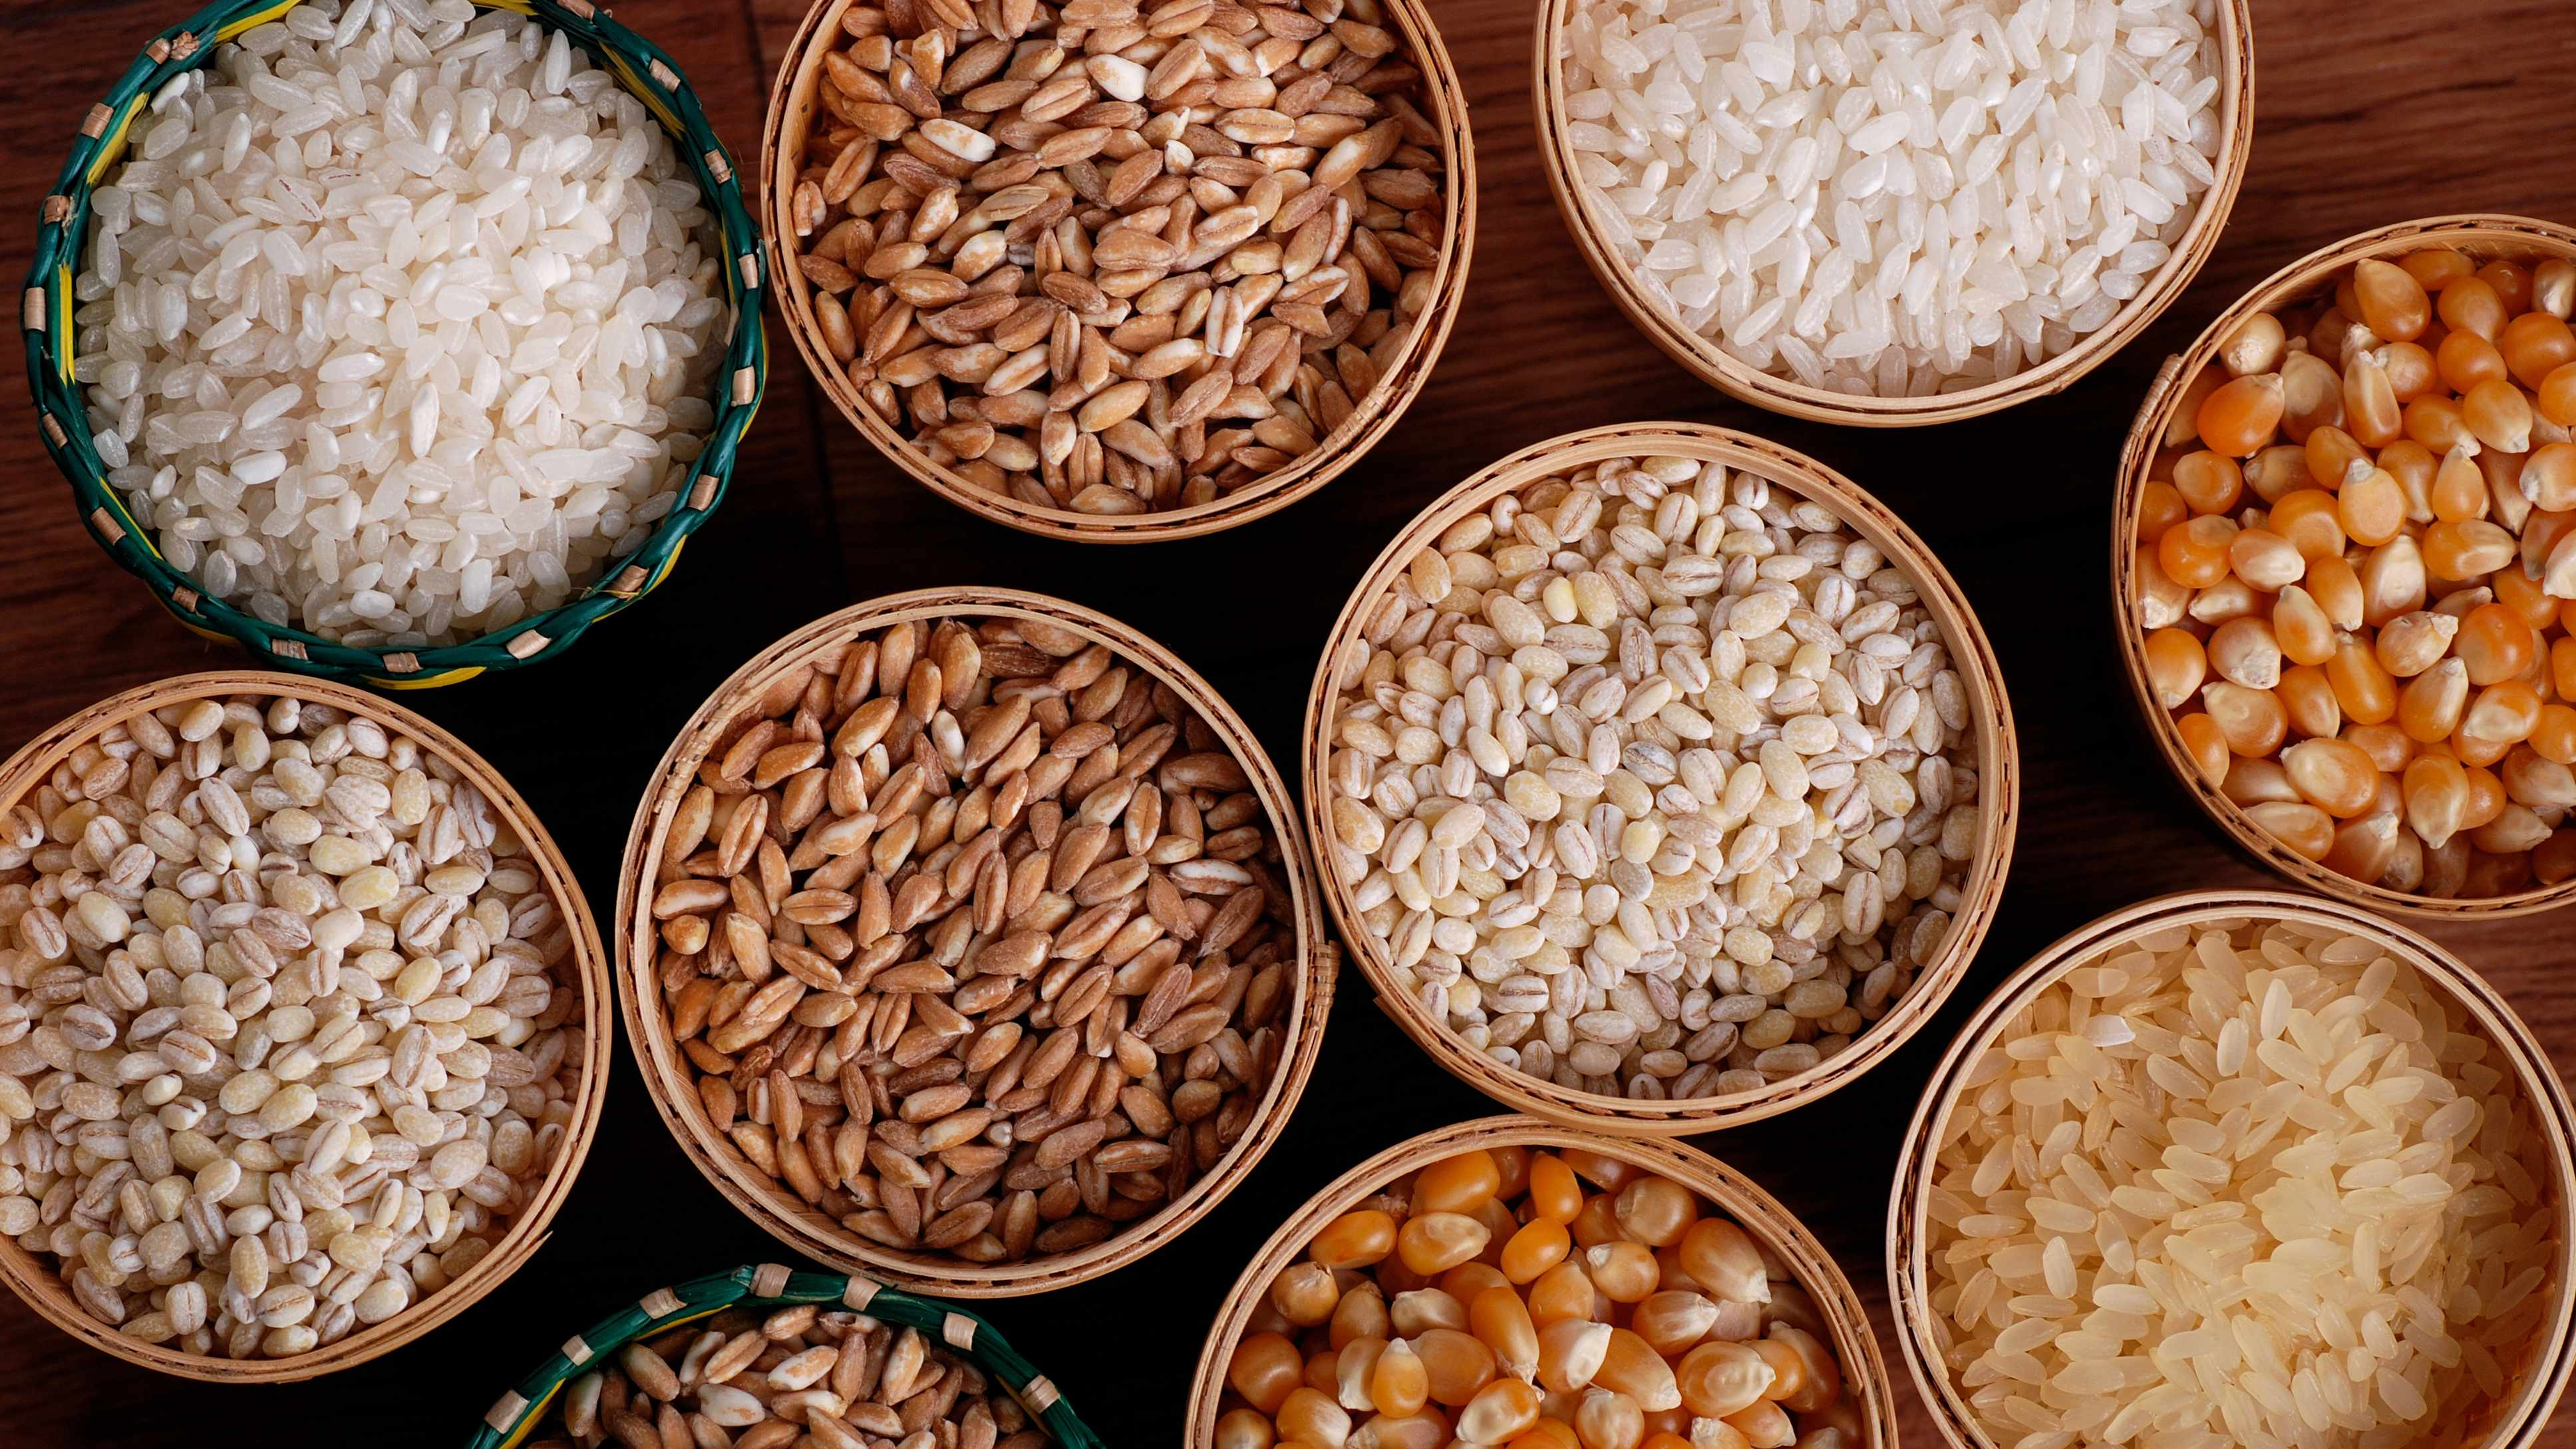 a group of small bowls filled with rice and whole grains